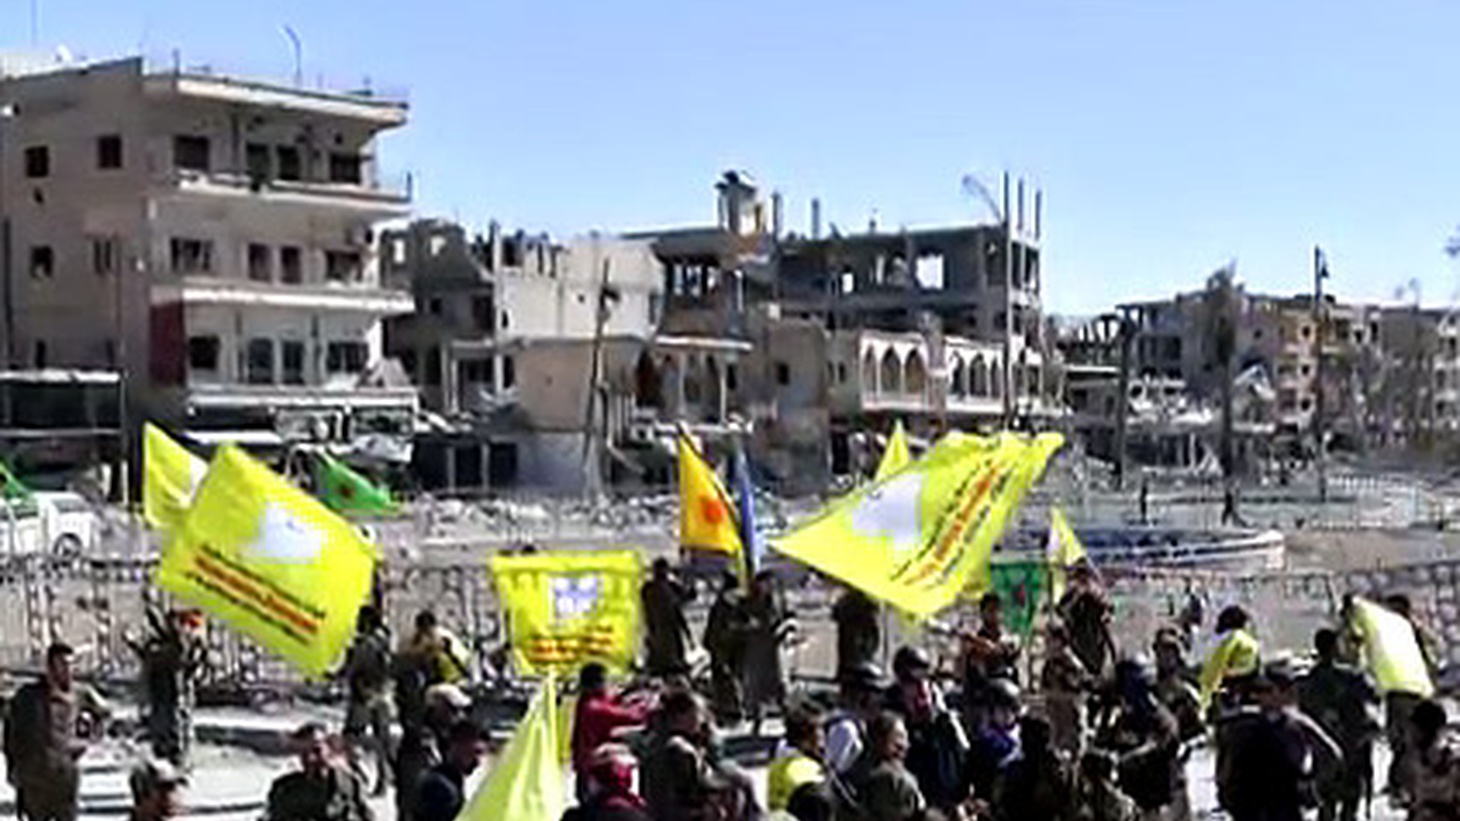 """With the backing of American power, Kurdish and Arab forces may have destroyed the city of Raqqa -- in order to save it. They claim that ISIS has been dislodged from what used to be called its """"capital city."""" Liz Sly, who covers Syria, Iraq and Lebanon for the  Washington Post , has more on the players and their roles."""